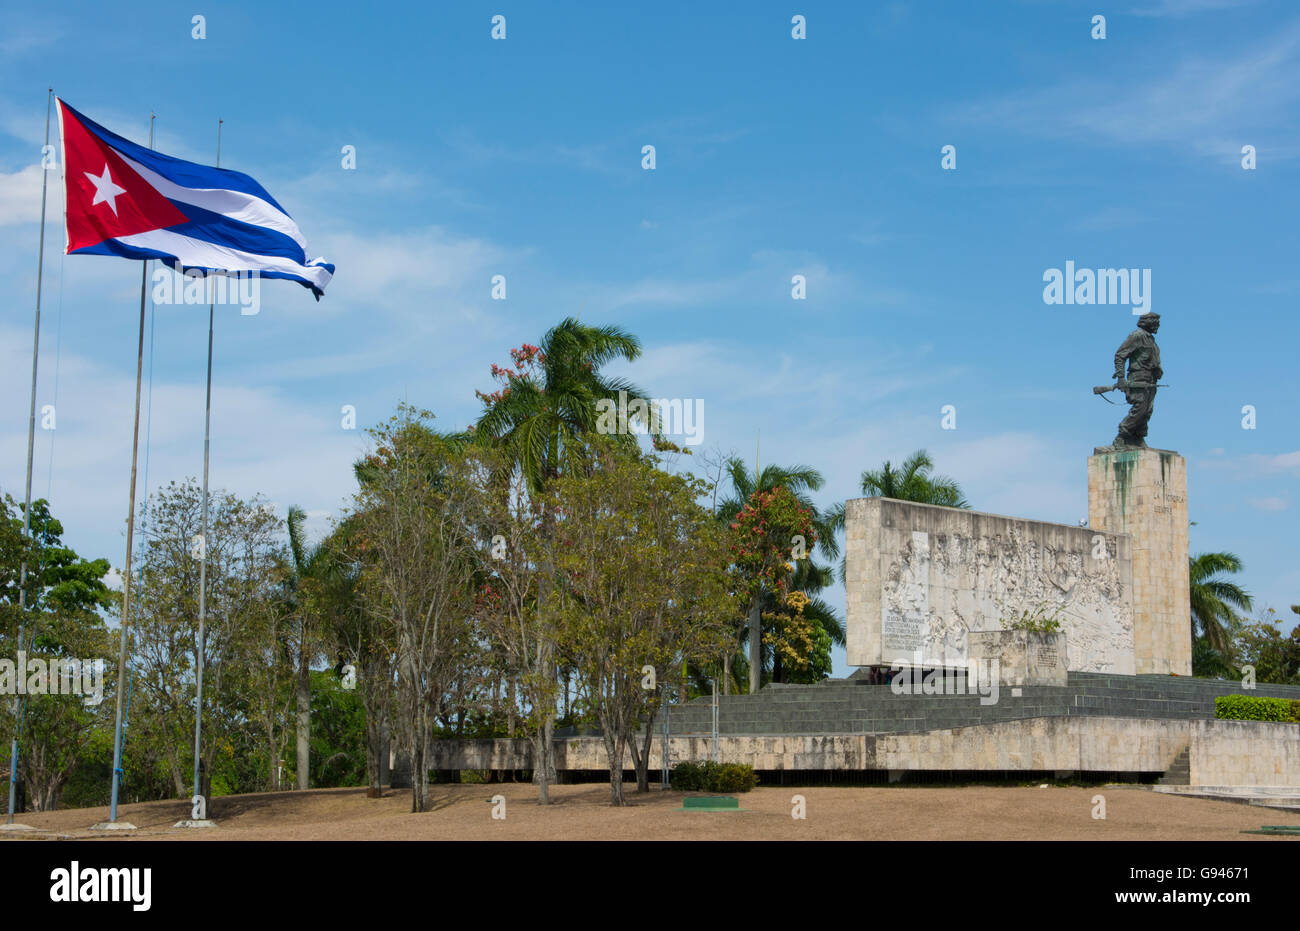 Santa Clara, Cuba memorial to Che Guevara hero of Revolution with statue and grave - Stock Image